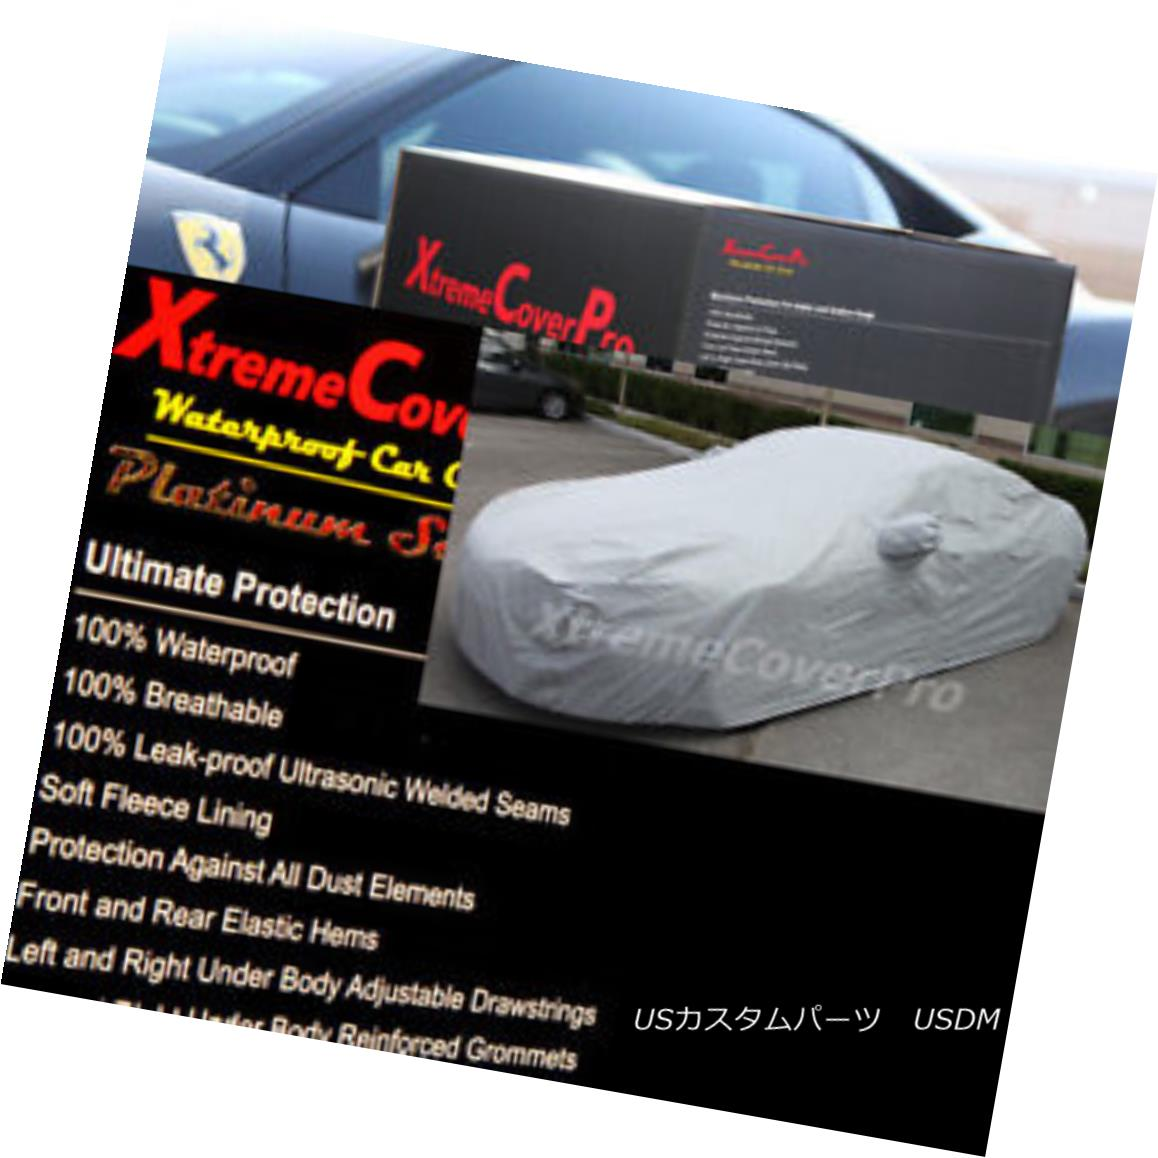 カーカバー 2013 VolksWagen Jetta Waterproof Car Cover w/MirrorPocket 2013年VolksWagen Jetta防水カーカバー付きMirrorPocket